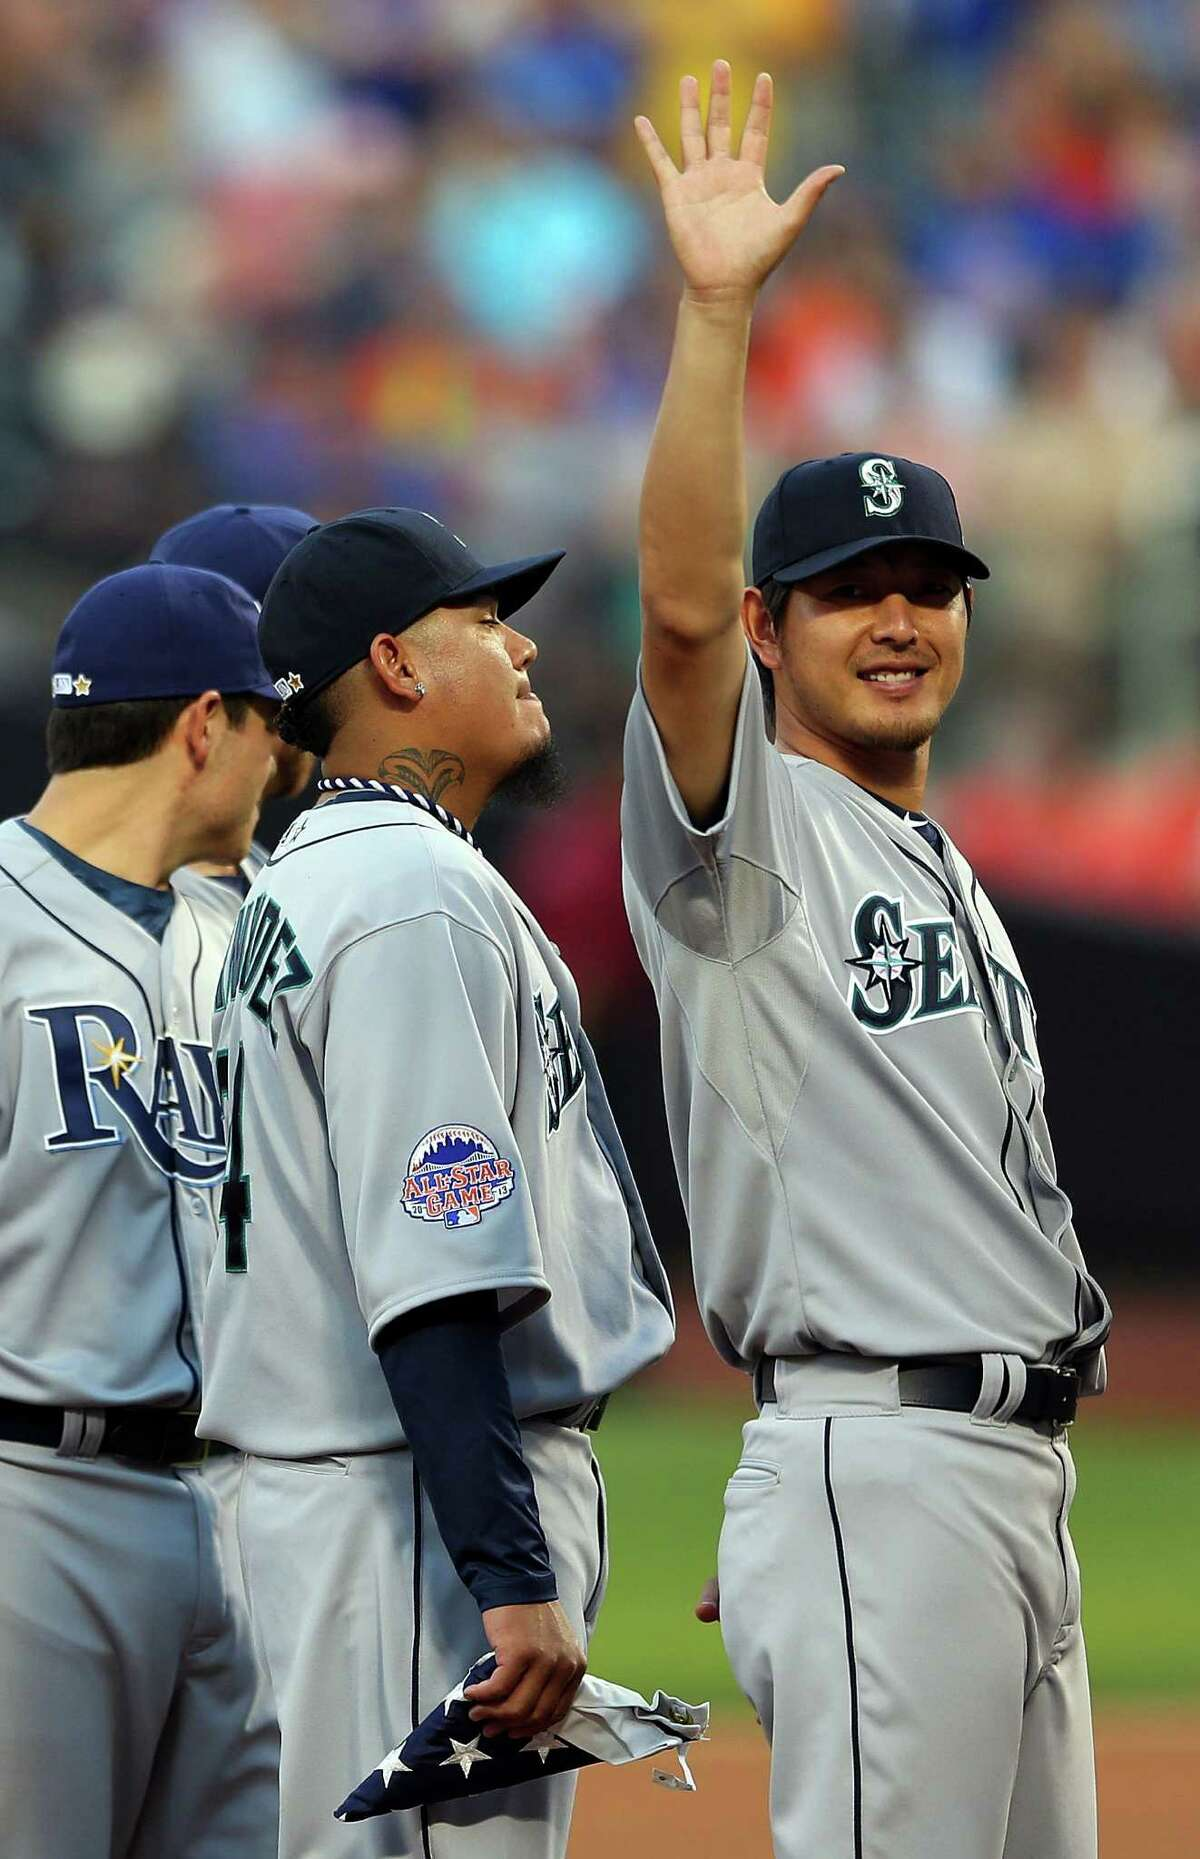 American League All-Star Hisashi Iwakuma, of the Seattle Mariners, waves as Felix Hernandez stands nearby during the 84th MLB All-Star Game on July 16, 2013, at Citi Field in Queens, N.Y.